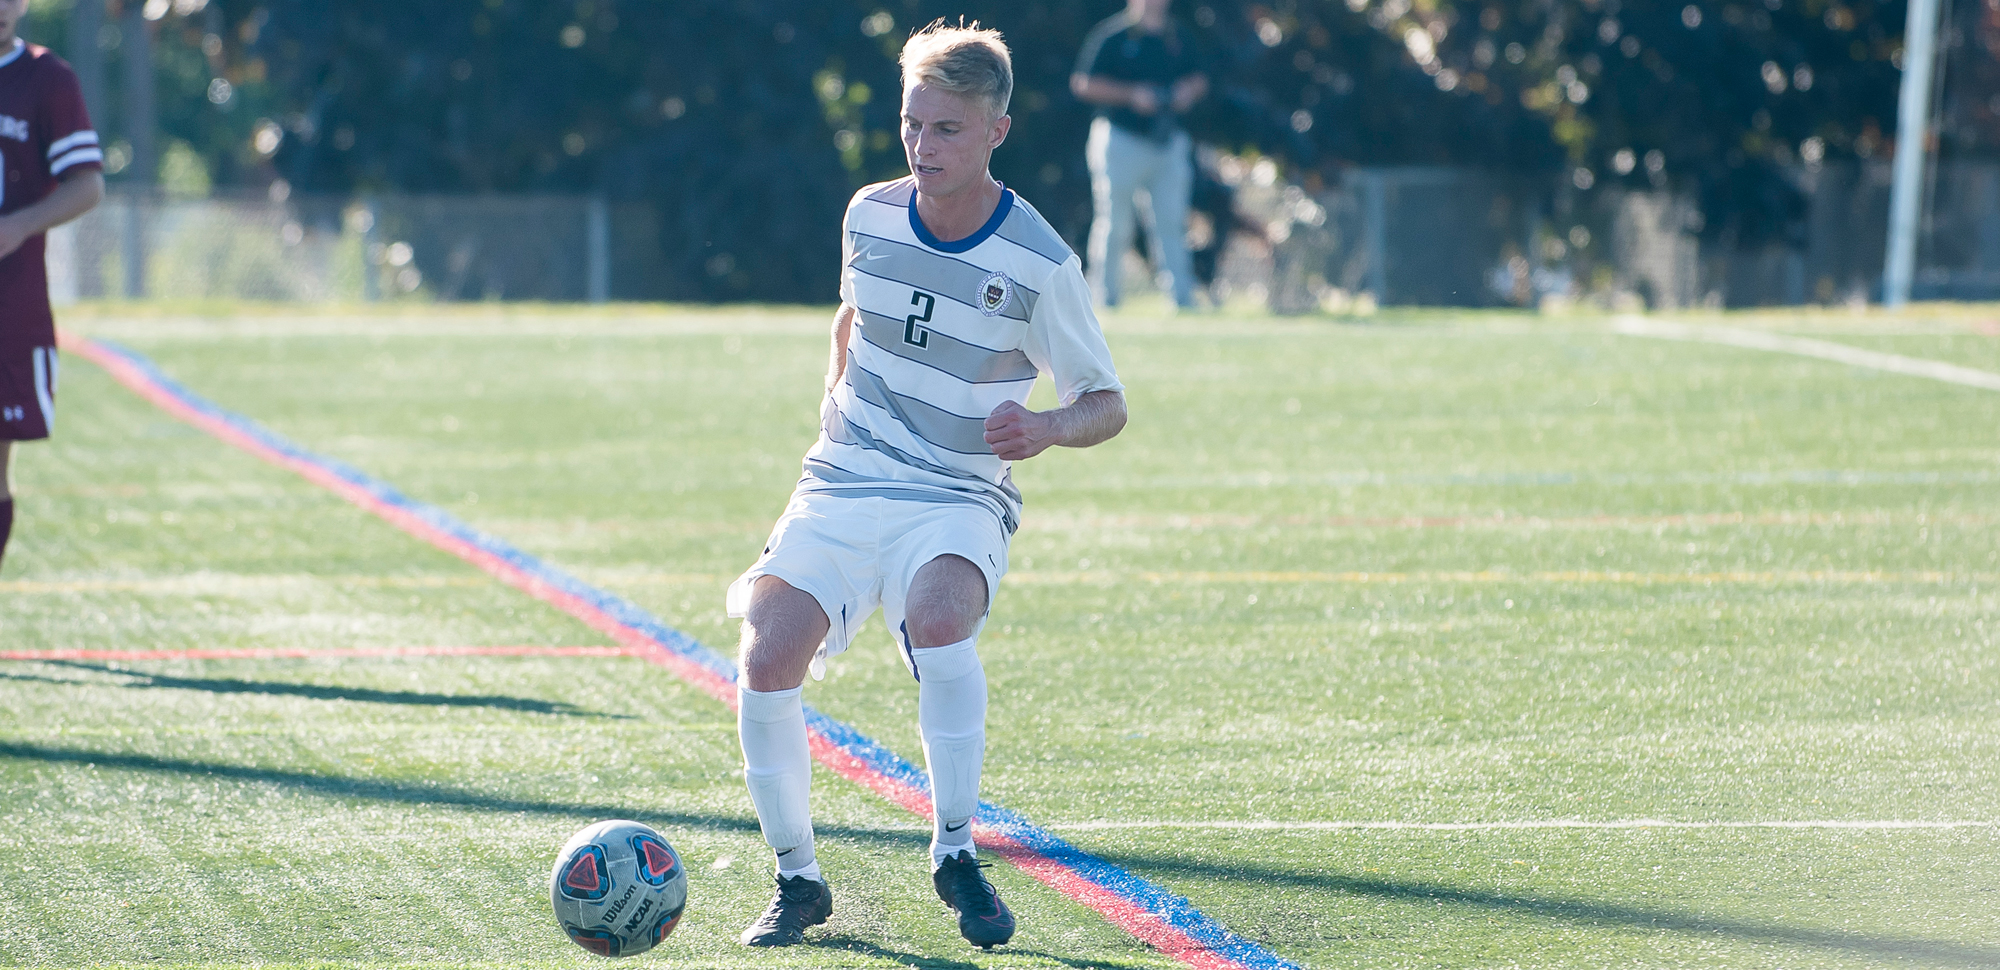 Senior Michael Bergen had two assists in the Royals' win on Saturday.